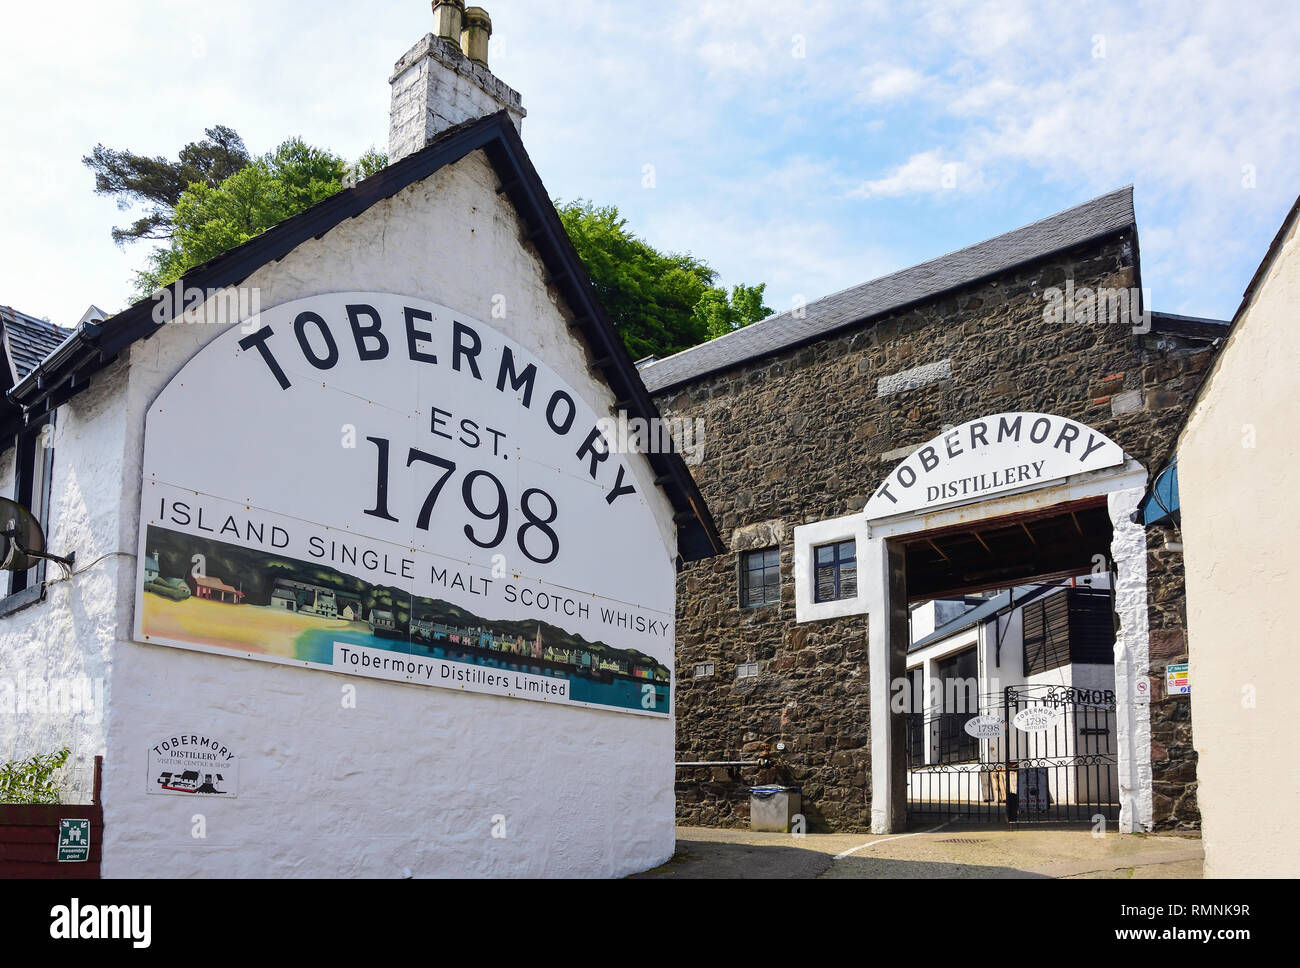 Tobermory Distillery Visitor Centre, Ledaig, Tobermory, Isle of Bute, Inner Hebrides, Argyll and Bute, Scotland, United Kingdom - Stock Image